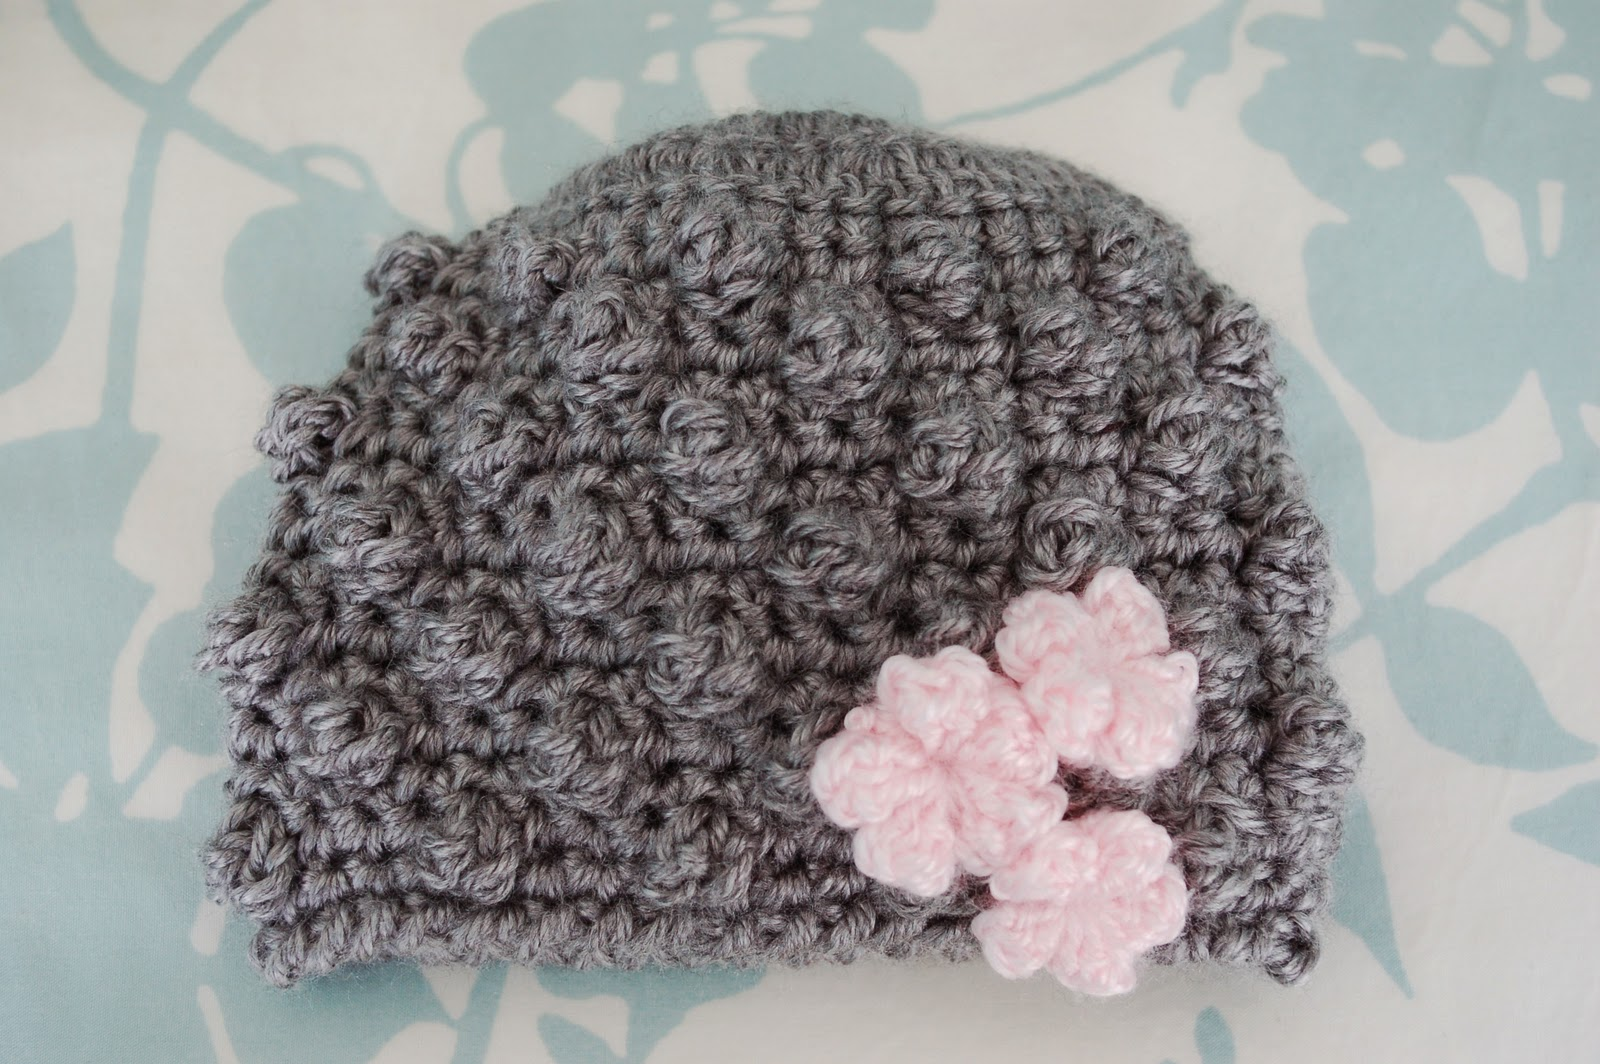 Crochet Patterns Of Baby Hats : FREE CROCHETED BABY HAT PATTERN Crochet Tutorials